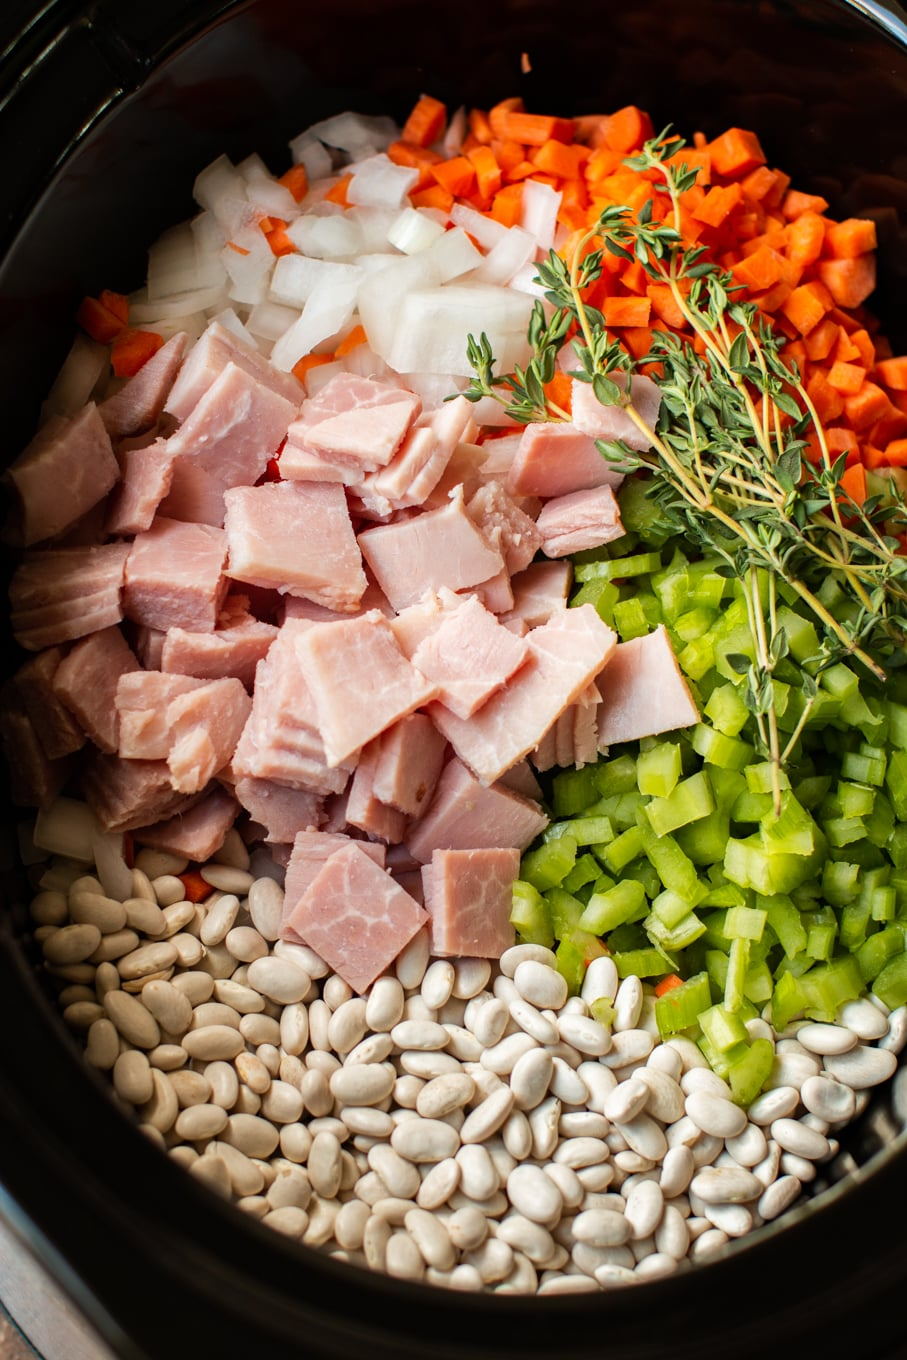 Ingredients for ham and beans in crock pot raw.